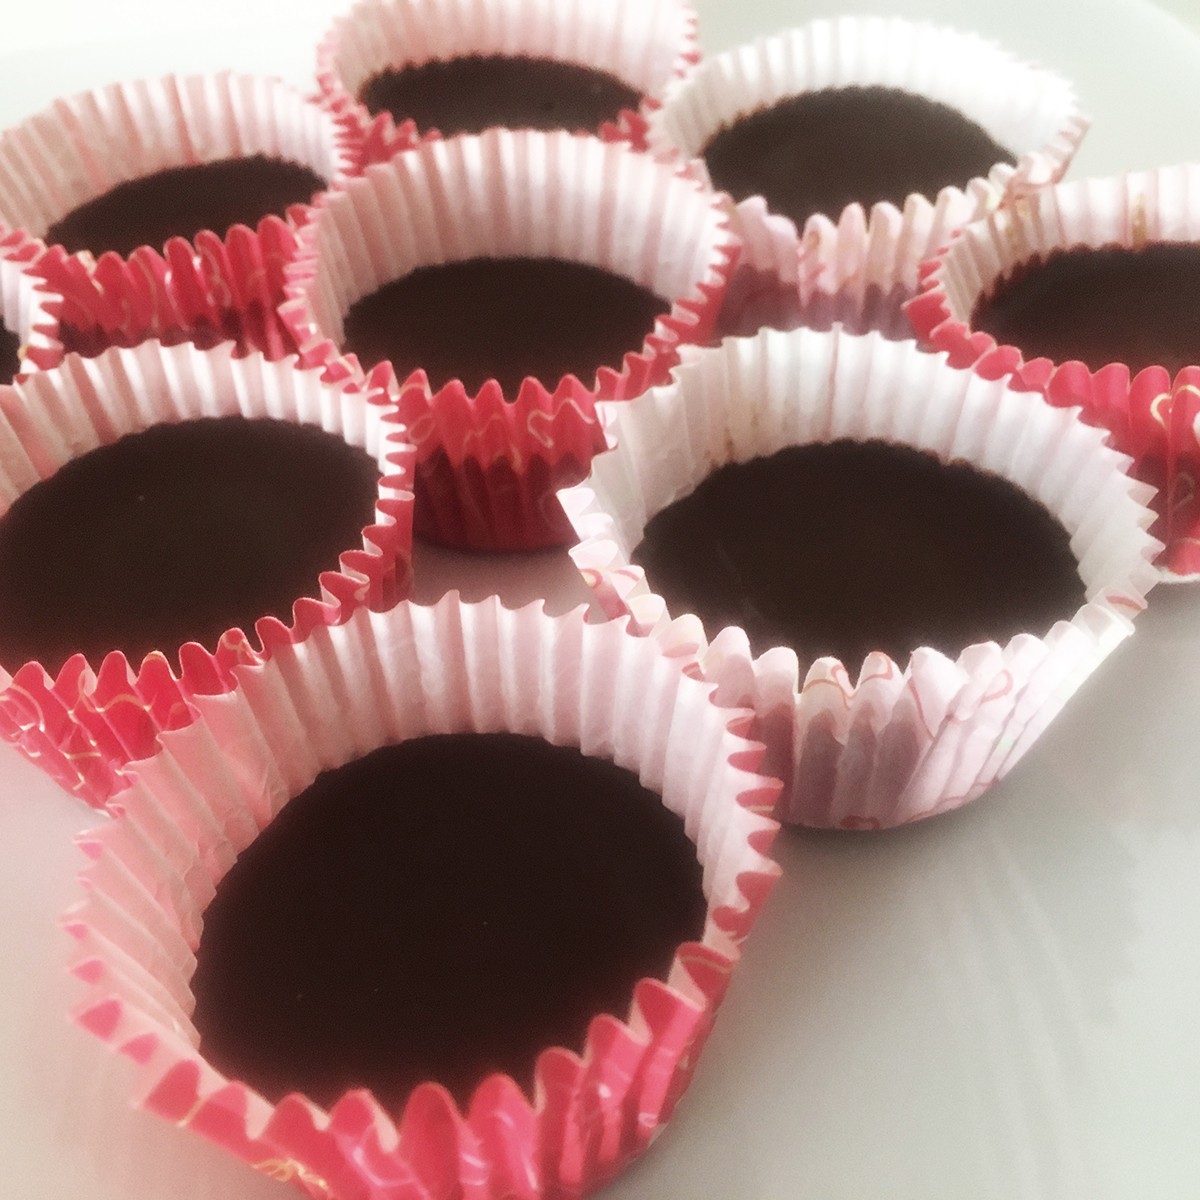 Dark Chocolate Almond Butter Cups       Cup Ingredients:          3/4 cup cacao paste    1/2 cup cacao butter    ½ - 1 cup maple syrup (adjust according to desired sweetness)    1/8 teaspoon sea salt    A few drops stevia (optional)     Filling Ingredients:          1/2 cup raw almond butter    2 teaspoons coconut sugar    1 teaspoon lucuma powder    1/4 teaspoon of sea salt     Directions:          Place cacao paste and cacao butter in a double-broiler to melt.    Remove from heat and stir in maple syrup.    Pour 2 teaspoons (for large cups) or 1 teaspoon (for small cups) of the chocolate into each cup of a lined cupcake tin. Sprinkle with sea salt.    Place tin in freezer for 30 minutes.    Mix filling ingredients together in a bowl.    Remove tin from freezer and scoop almond butter filling, adding 2 teaspoons (for large cups) or 1 teaspoon (for small cups) to each cup.    Place tin in freezer for 30 minutes.    Remove tin from freezer and pour remaining chocolate into each cup, covering the almond butter filling. Sprinkle with sea salt.    Place tin in freezer for at least 6 hours before serving. Allow to warm to room temperature (5 - 10 minutes) for best flavor.     Yields: 6 large or 12 small cups        If you liked this recipe...consider joining the Thryve Studio DIY Chocolate Truffle Making class happening this weekend. Perfect Valentine's activity to celebrate the occasion. See flyer for sign up details below.